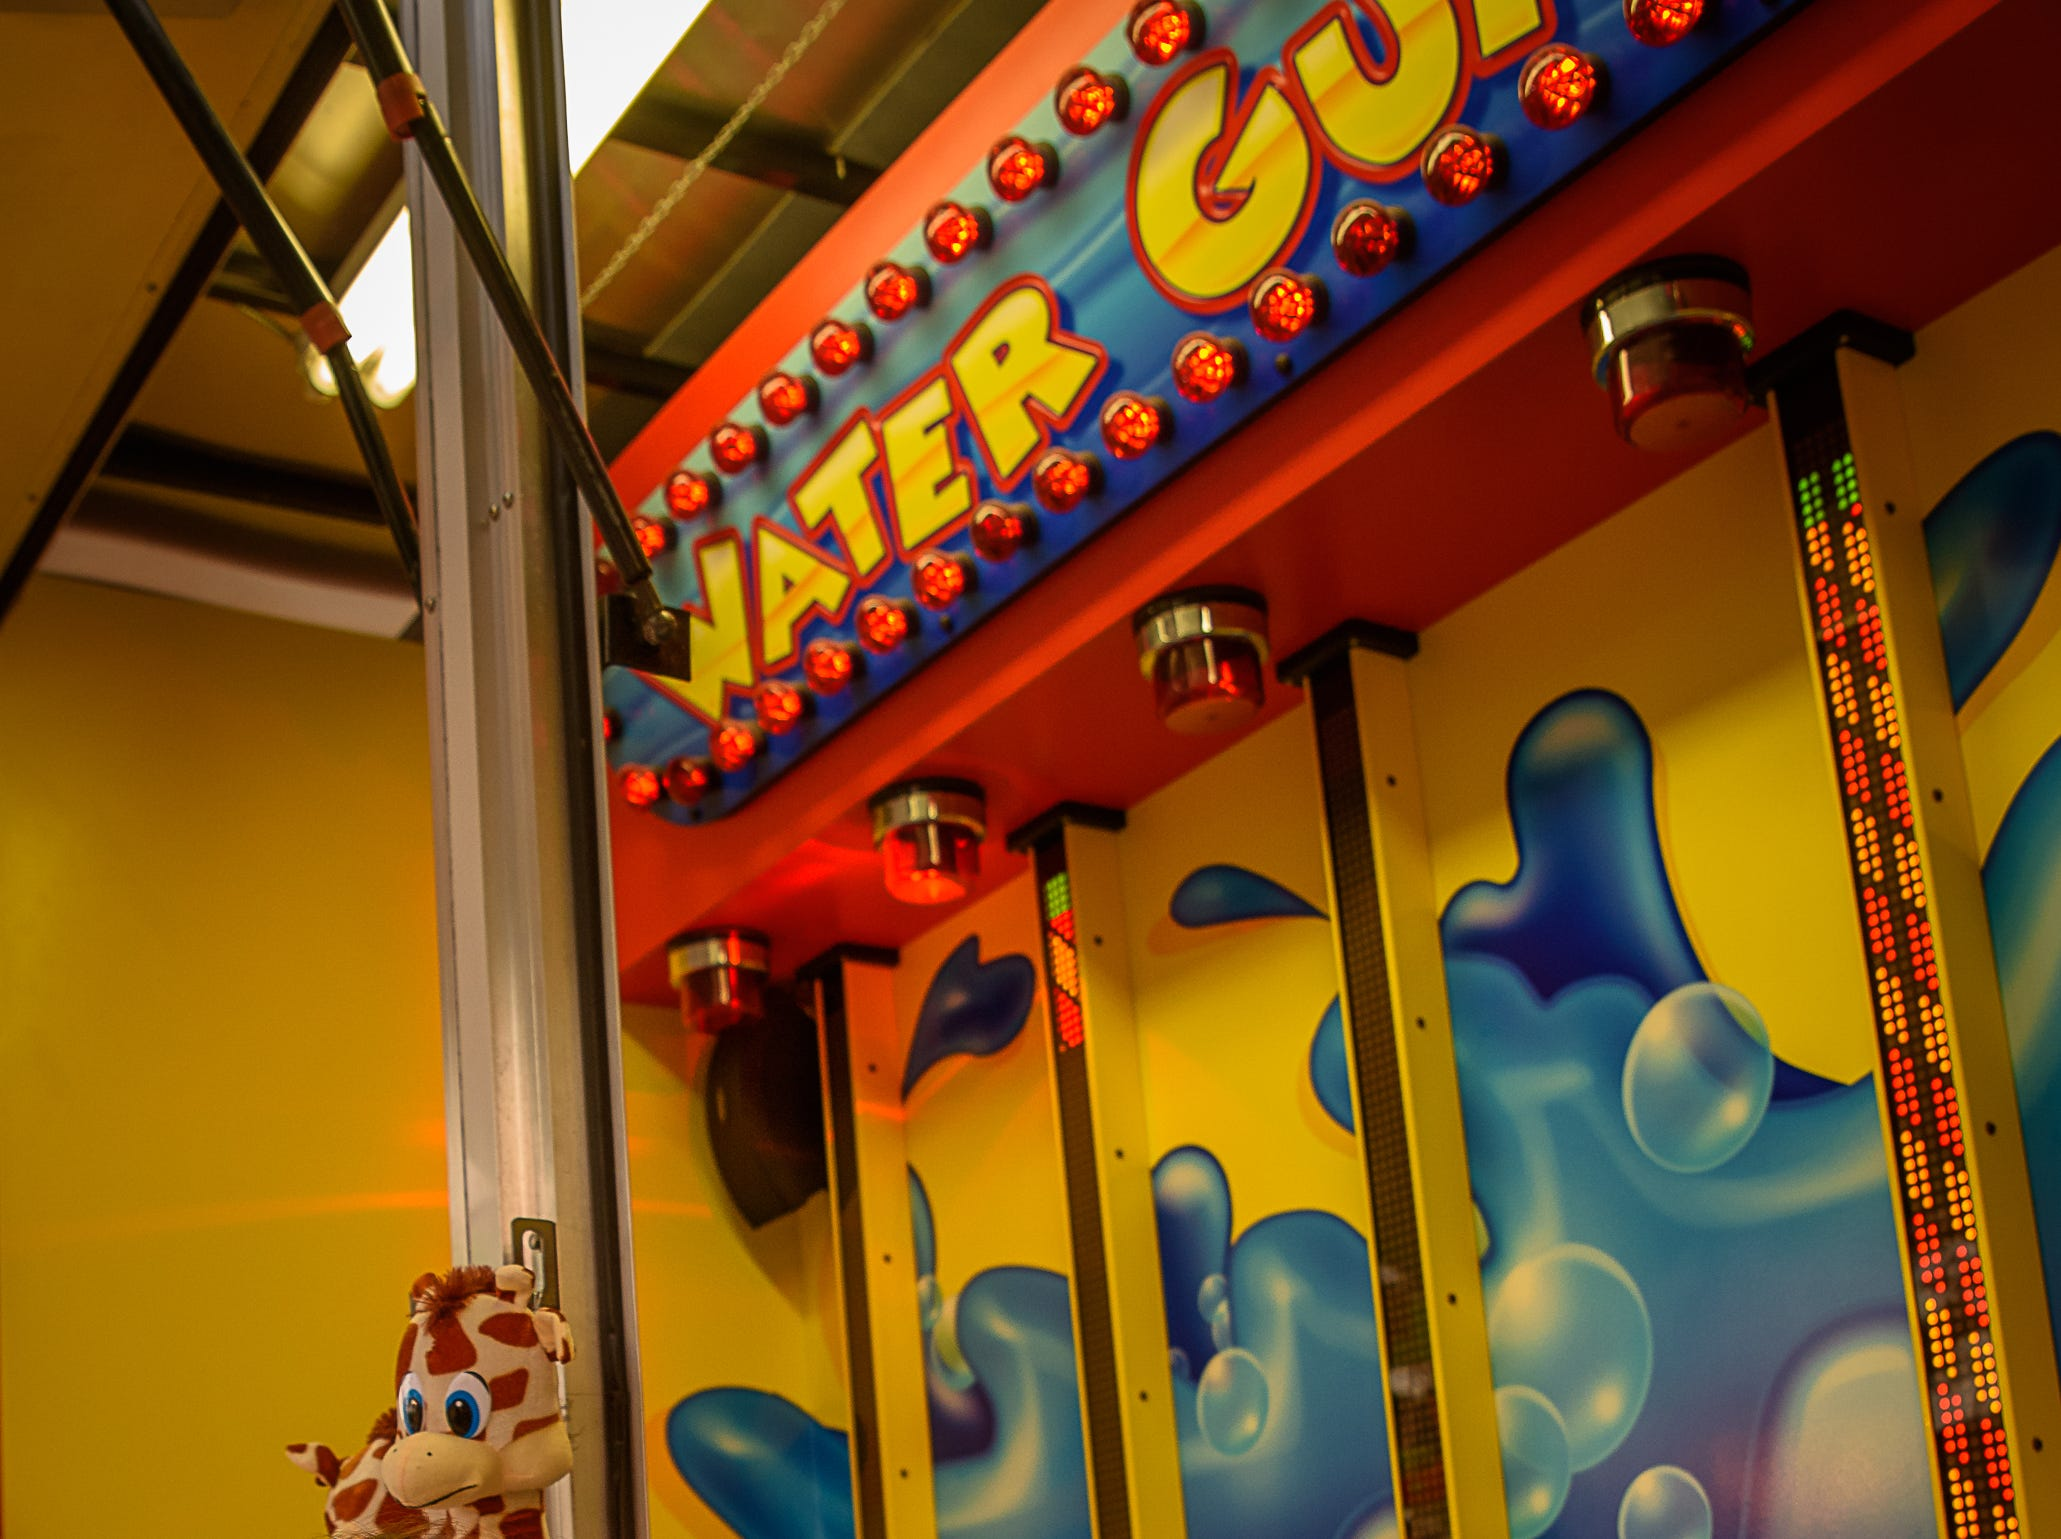 The water gun game was a popular attraction at the fair at the Chincoteague Fireman's Carnival.